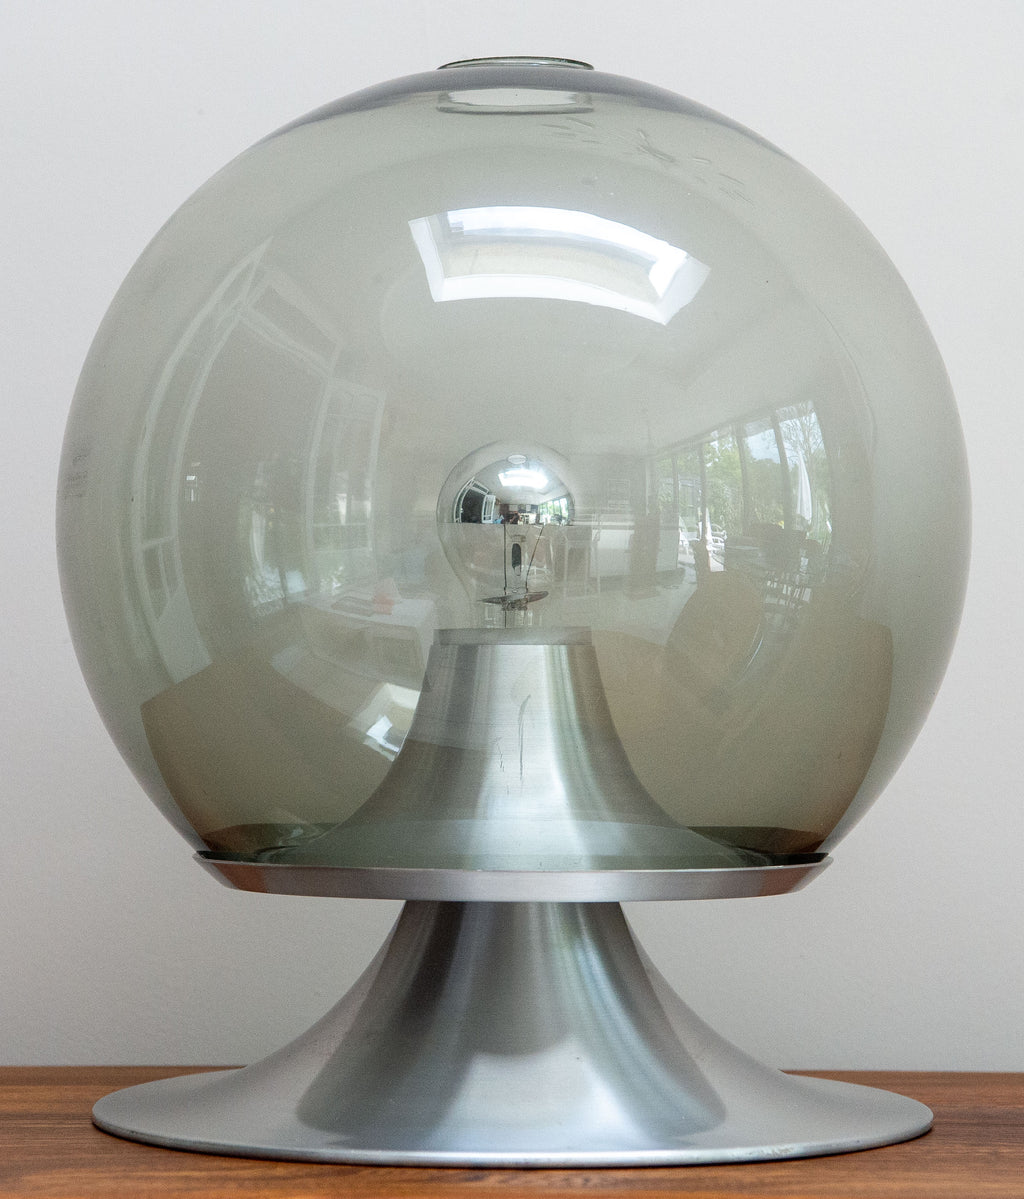 RARE ! 1960's DROOMEILAND (DREAM ISLAND) DESK LAMP BY RAAK. Spun aluminium and lightly smoked glass. Rarely available in this large 42cm size (Model: D-2002.00)